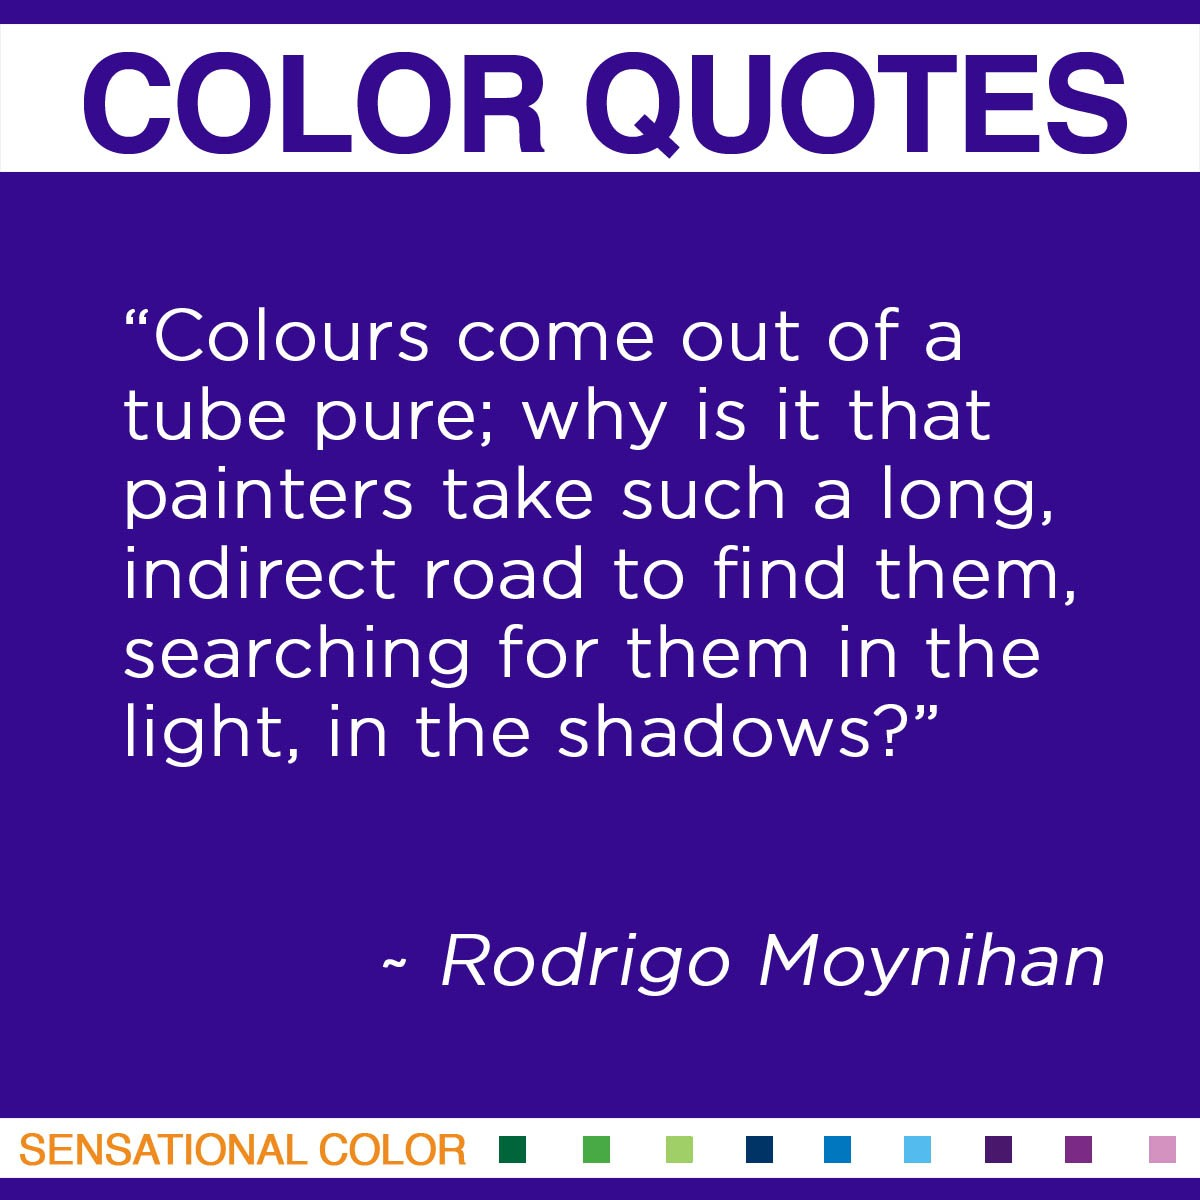 """Colours come out of a tube pure; why is it that painters take such a long, indirect road to find them, searching for them in the light, in the shadows?"" - Rodrigo Moynihan"